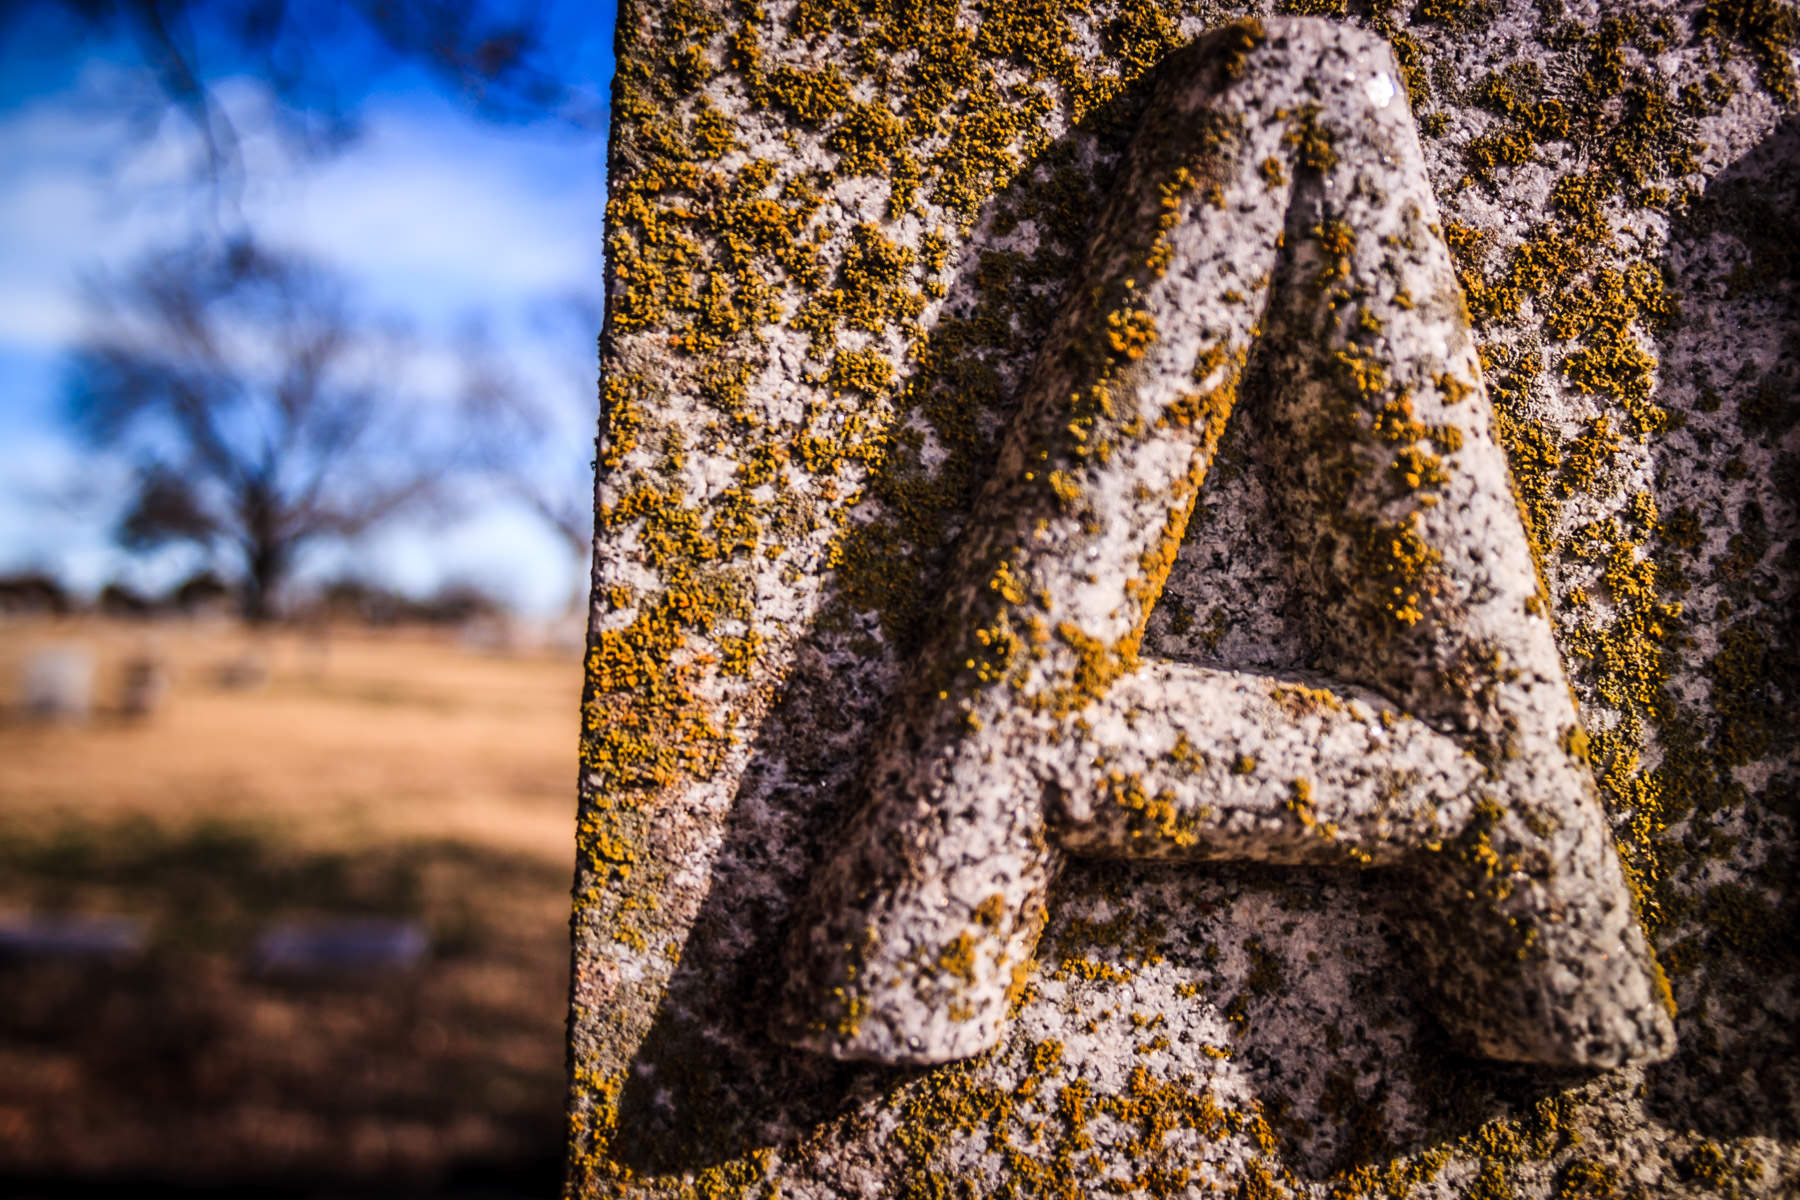 Moss grows on a headstone in McKinney, Texas' historic Pecan Grove Cemetery.